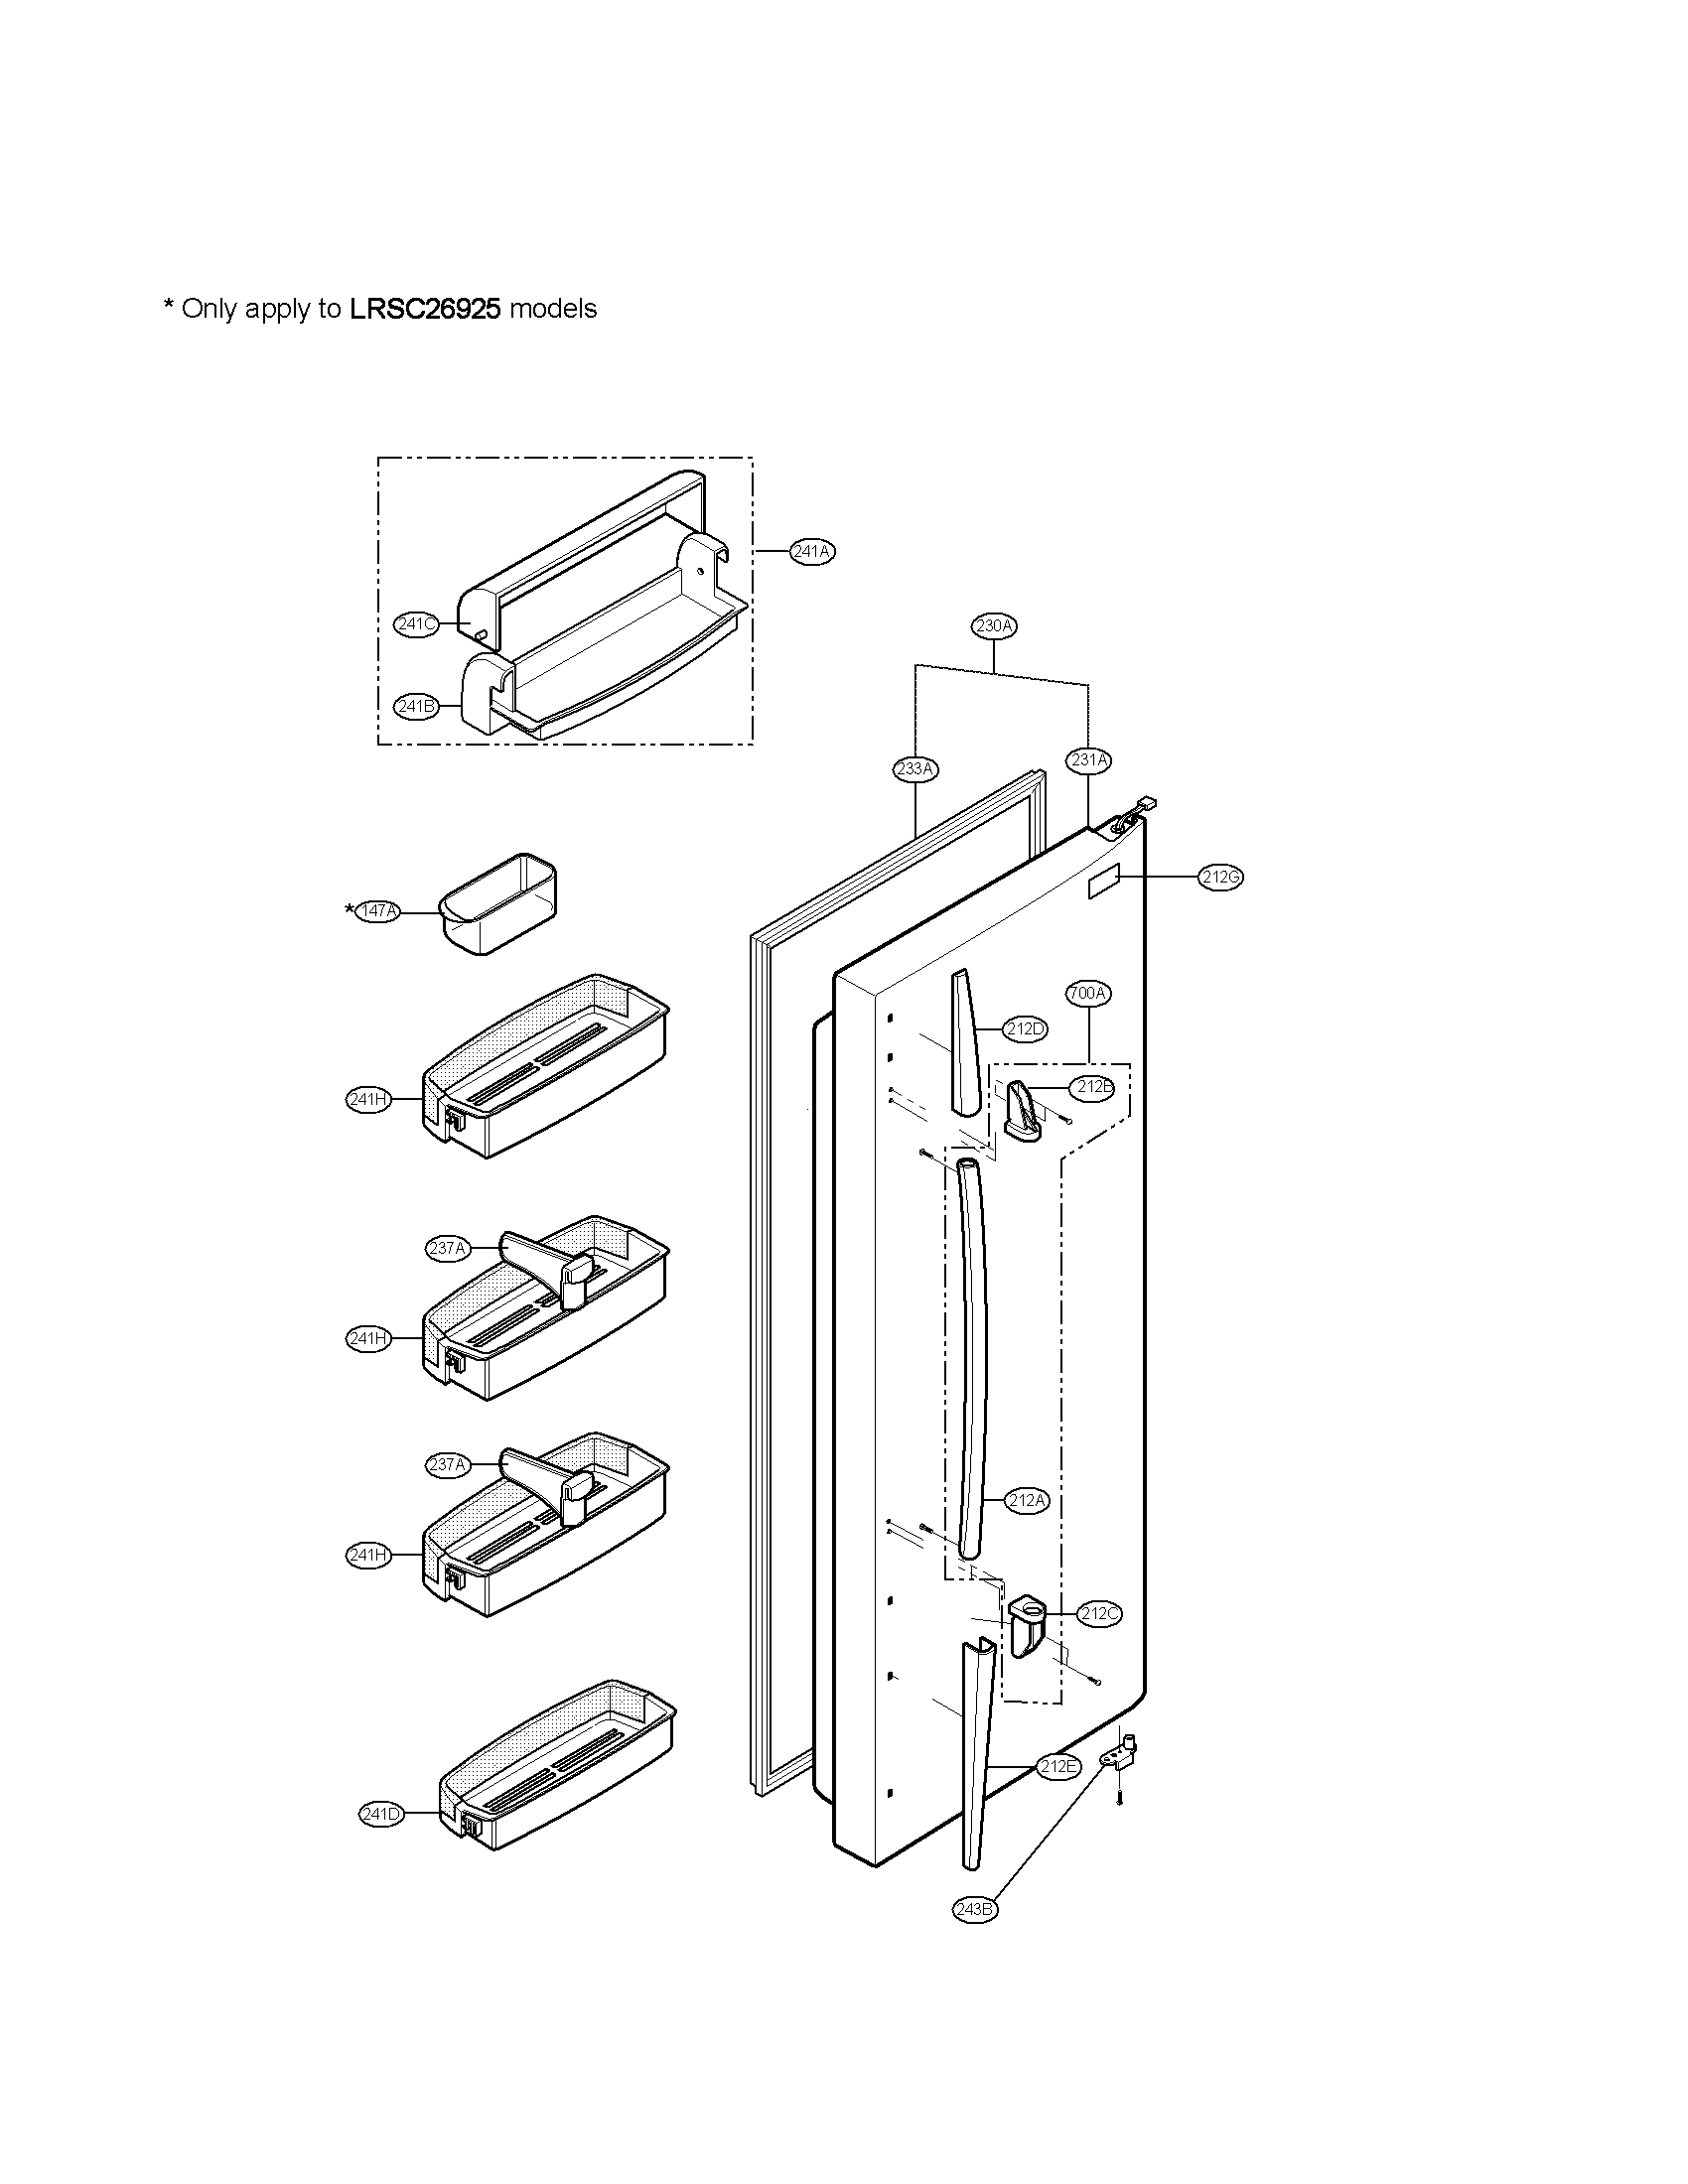 Lg model LRSC26923TT side-by-side refrigerator genuine parts